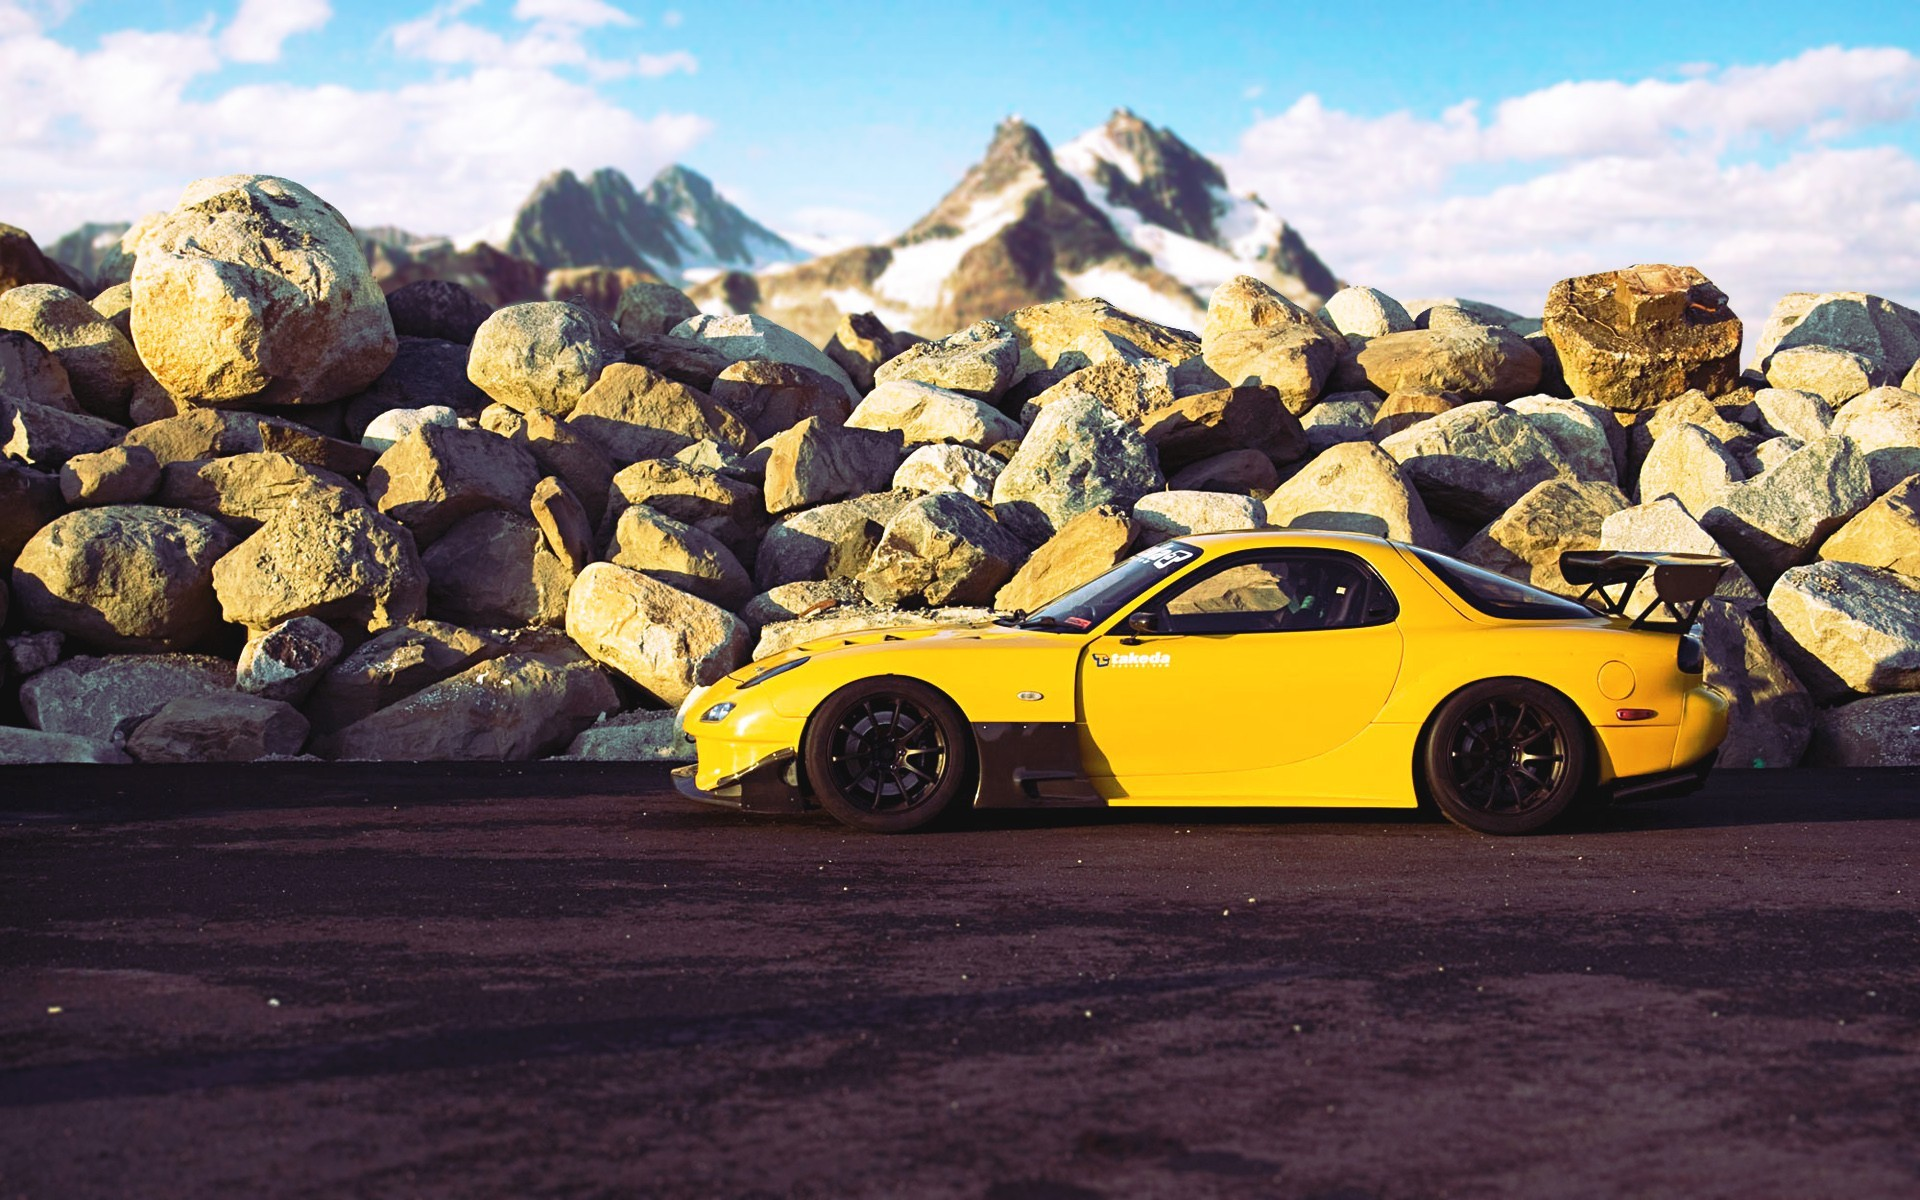 Stanced Car Iphone Wallpaper Mazda Rx 7 Wallpapers High Quality Download Free